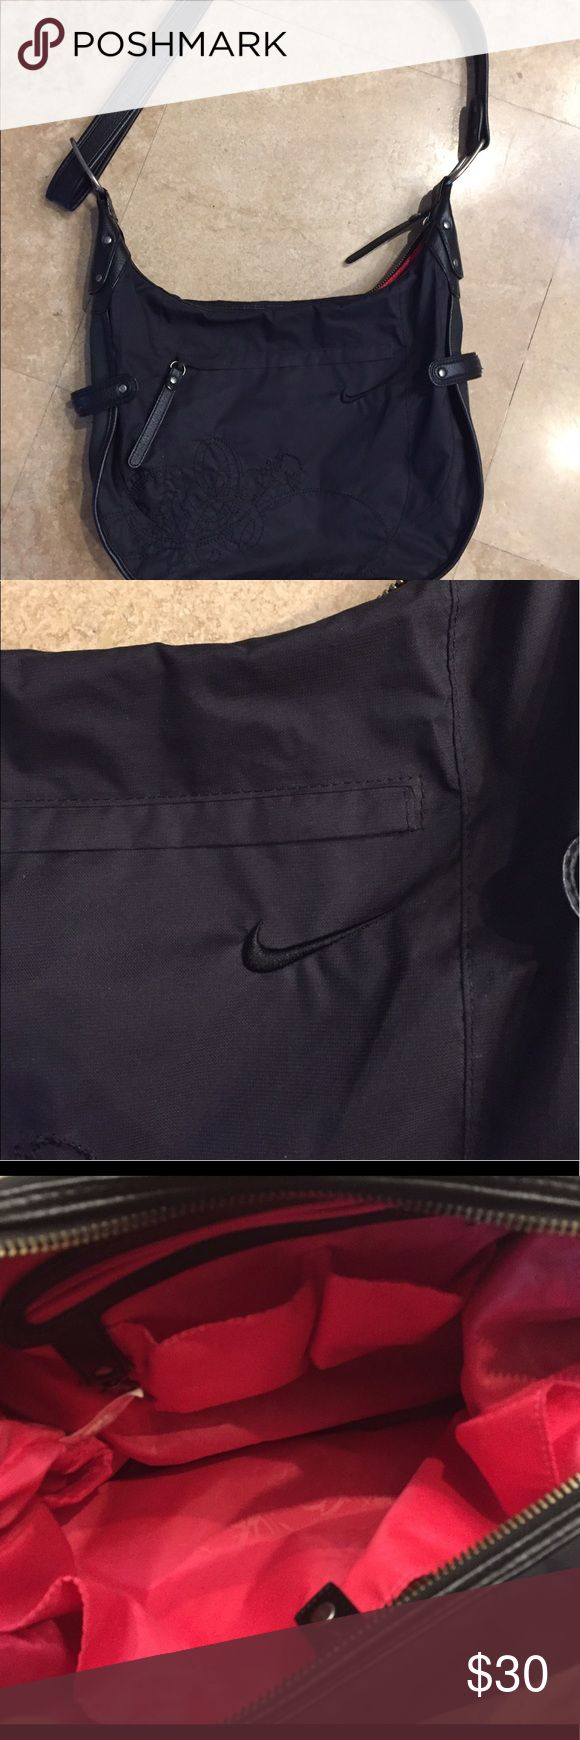 Nike bag Nike bag with strap hardly used very clean Nike Bags Shoulder Bags